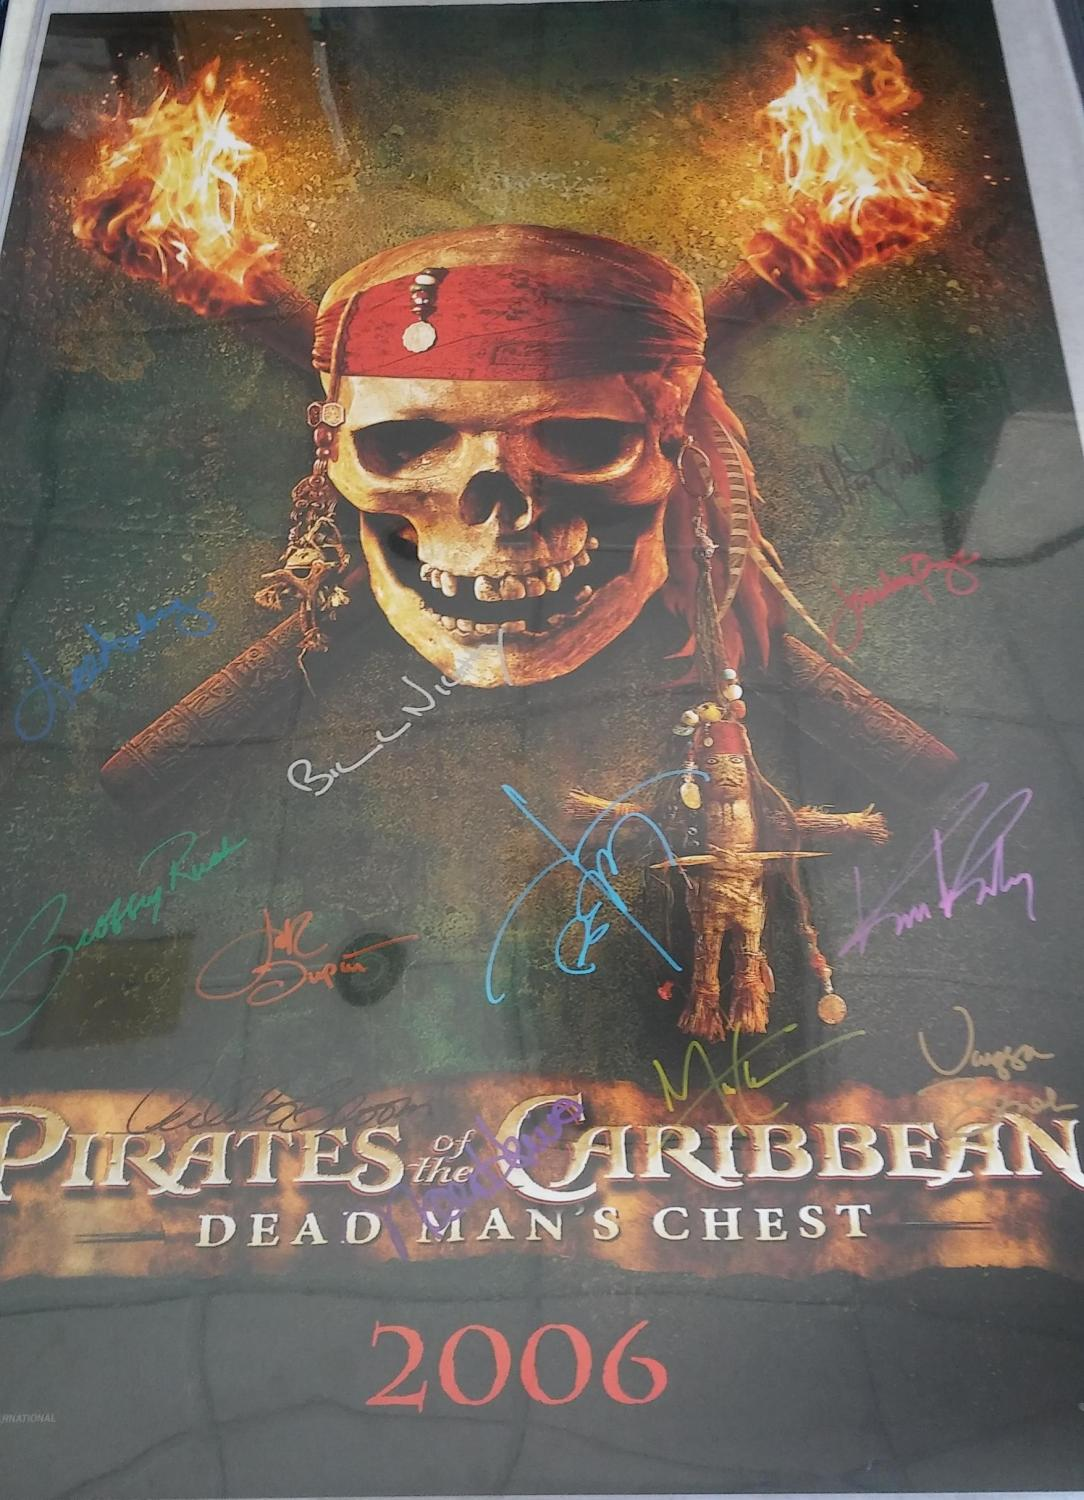 FULL SIZE MOVIE POSTER 'PIRATES OF THE CARIBBEAN: DEAD MAN'S CHEST', *SIGNED* BY CAST (REPRINT POSTER), Disney Enterprises Inc.